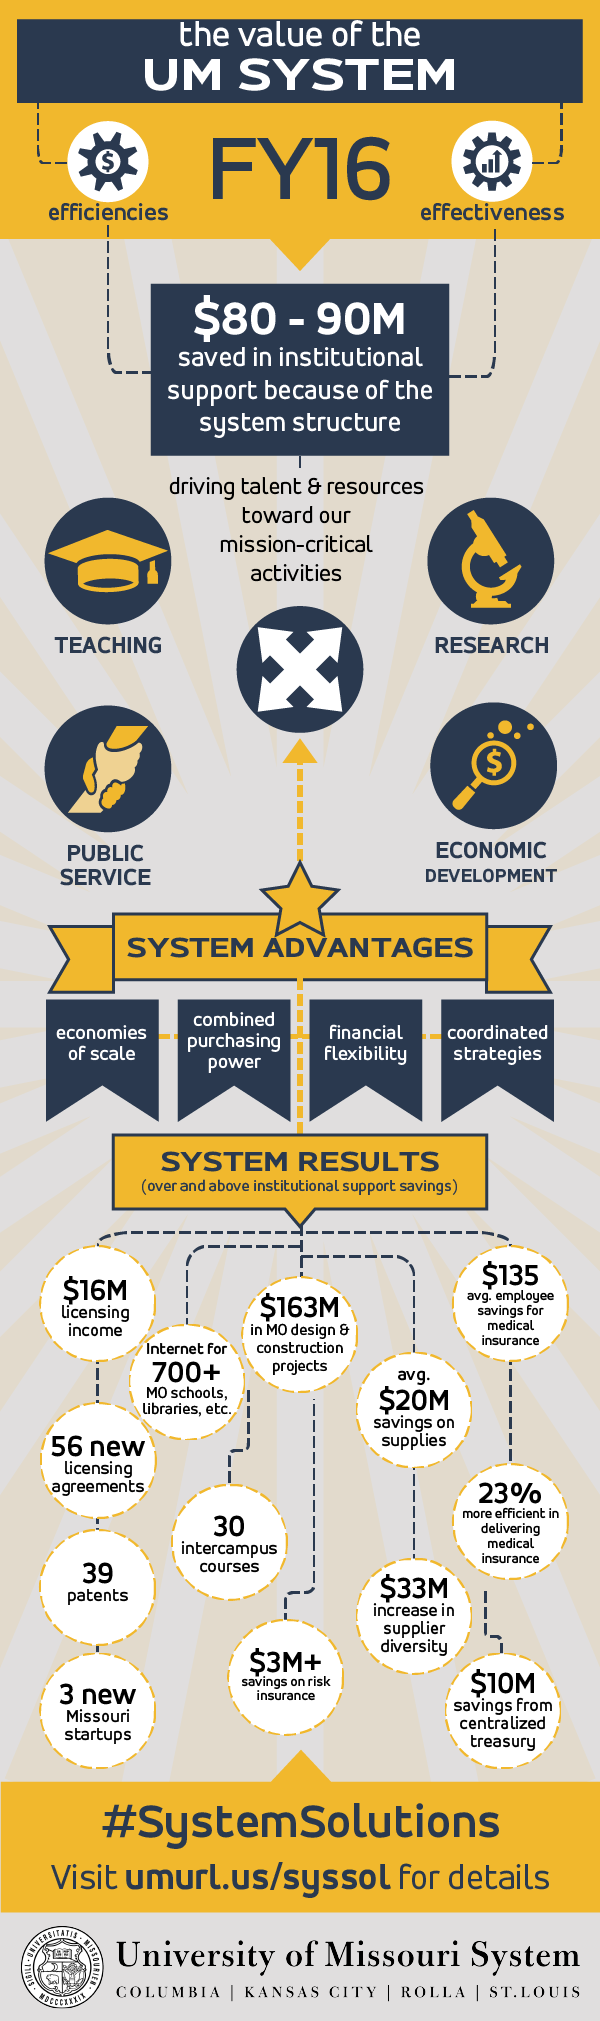 Infographic presenting data from the FY16 Efficiencies and Effectiveness Report available here: https://www.umsystem.edu/ums/about/reports